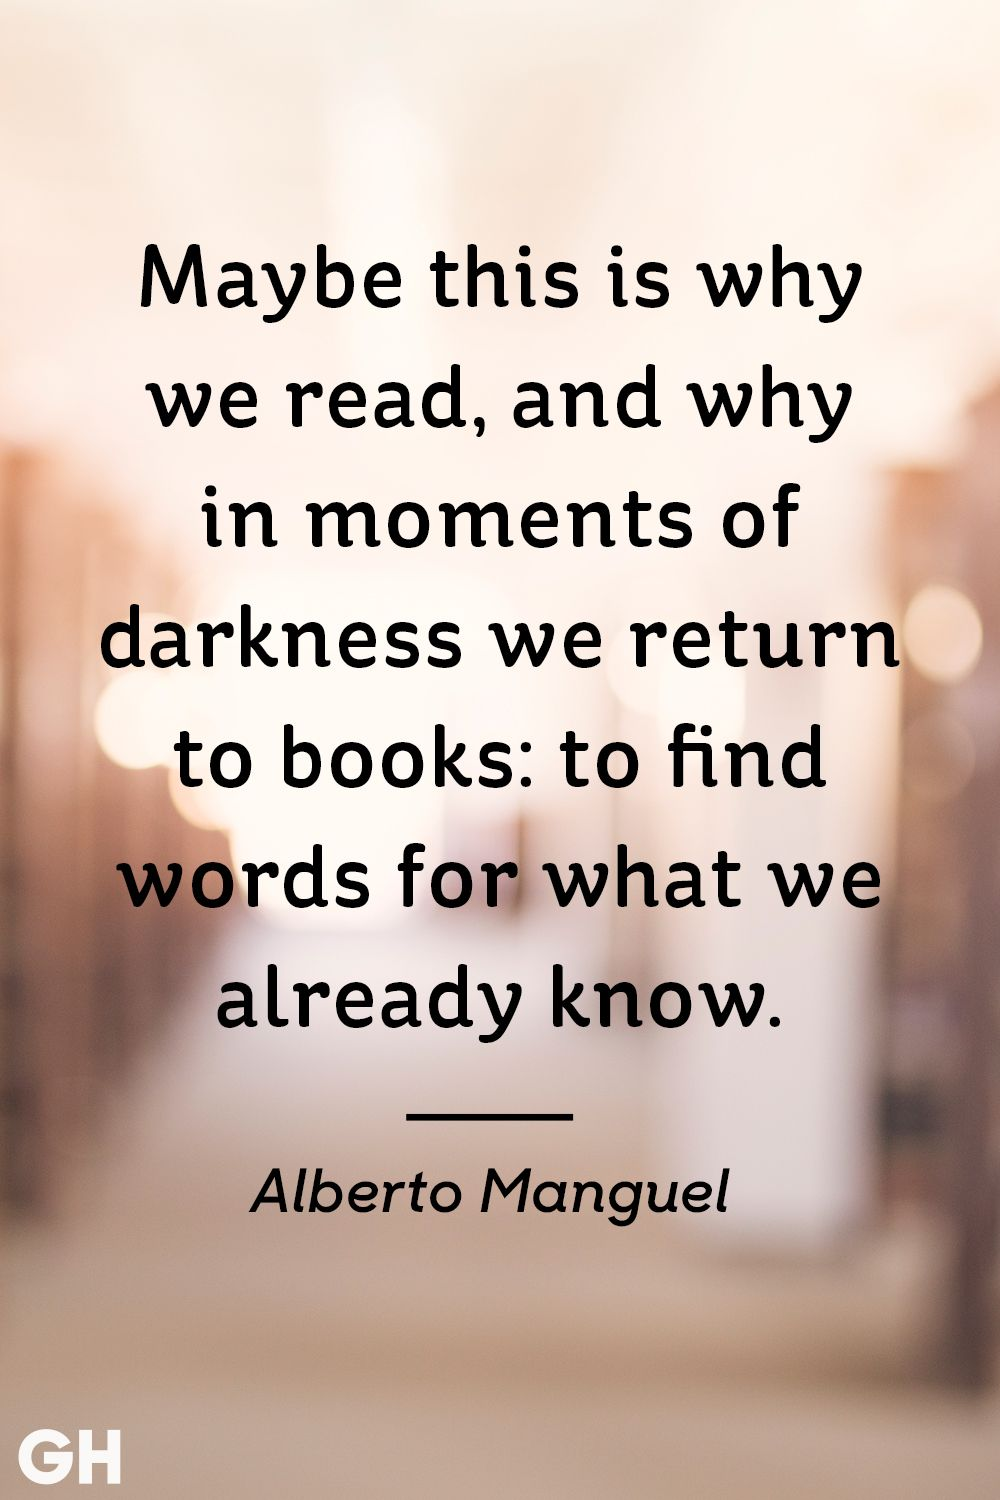 Quotes About Books And Reading 26 Best Book Quotes   Quotes About Reading Quotes About Books And Reading